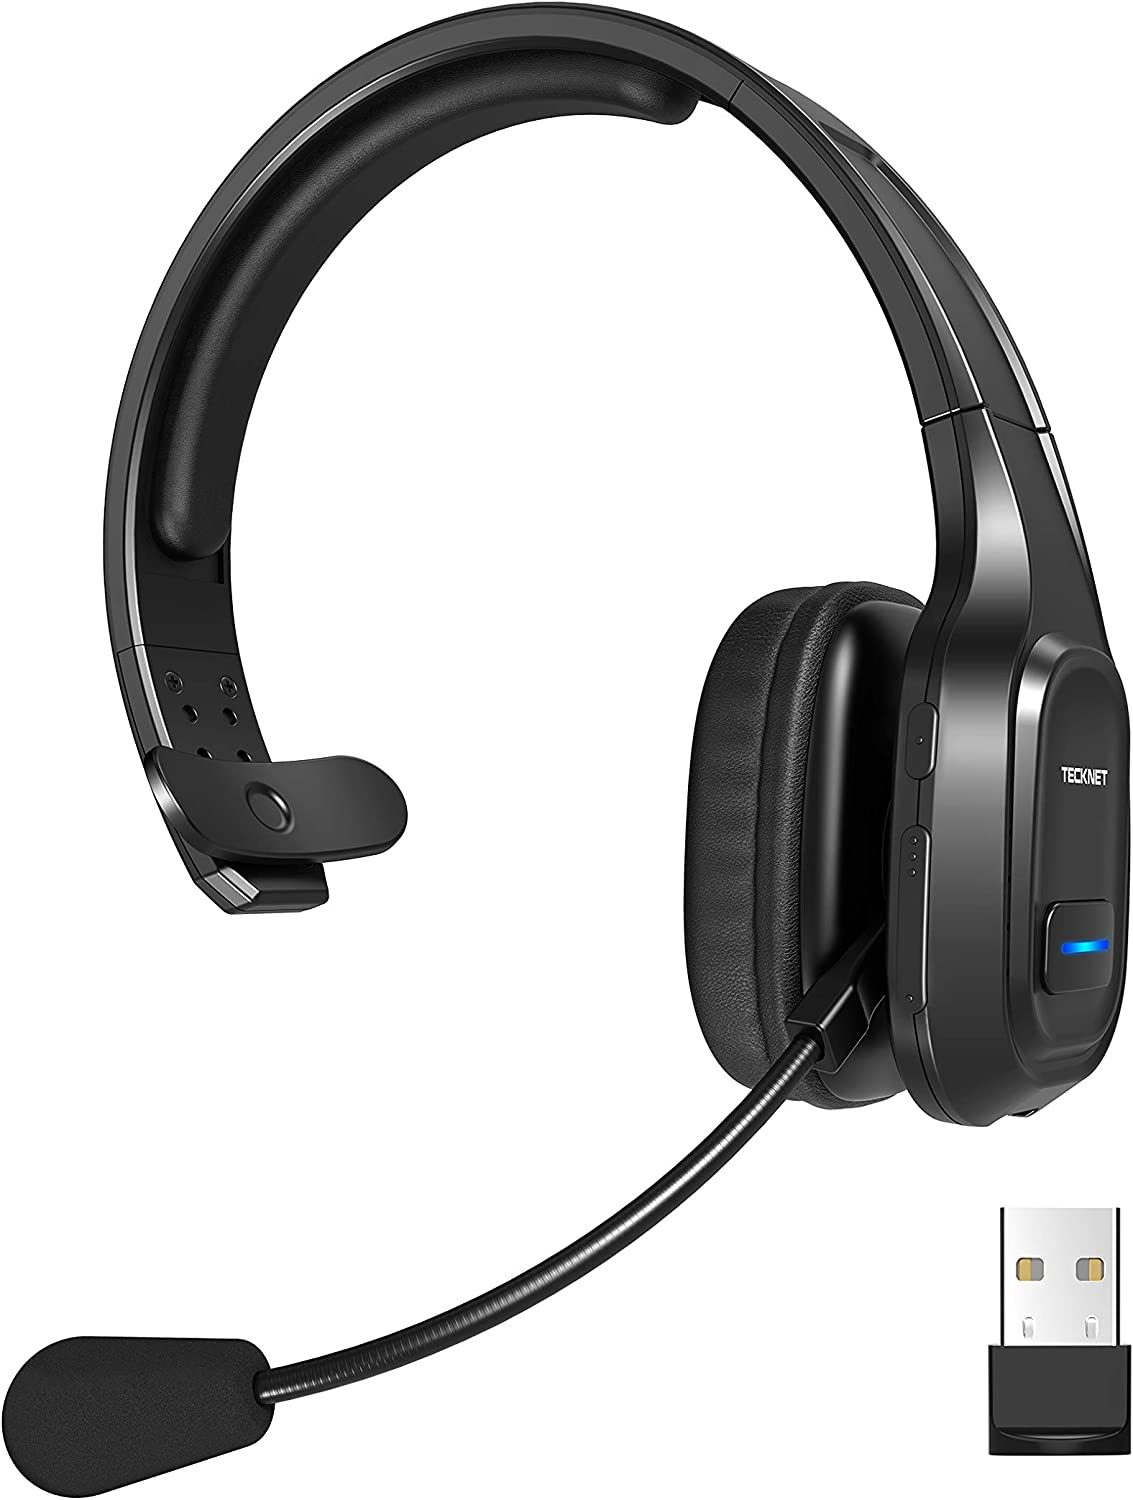 TECKNET Bluetooth Trucker Headset with Microphone Noise Canceling Wireless On Ear Headphones, Hands Free Telephone Headset for Cell Phone Computer Office Home Call Center Skype (Black)